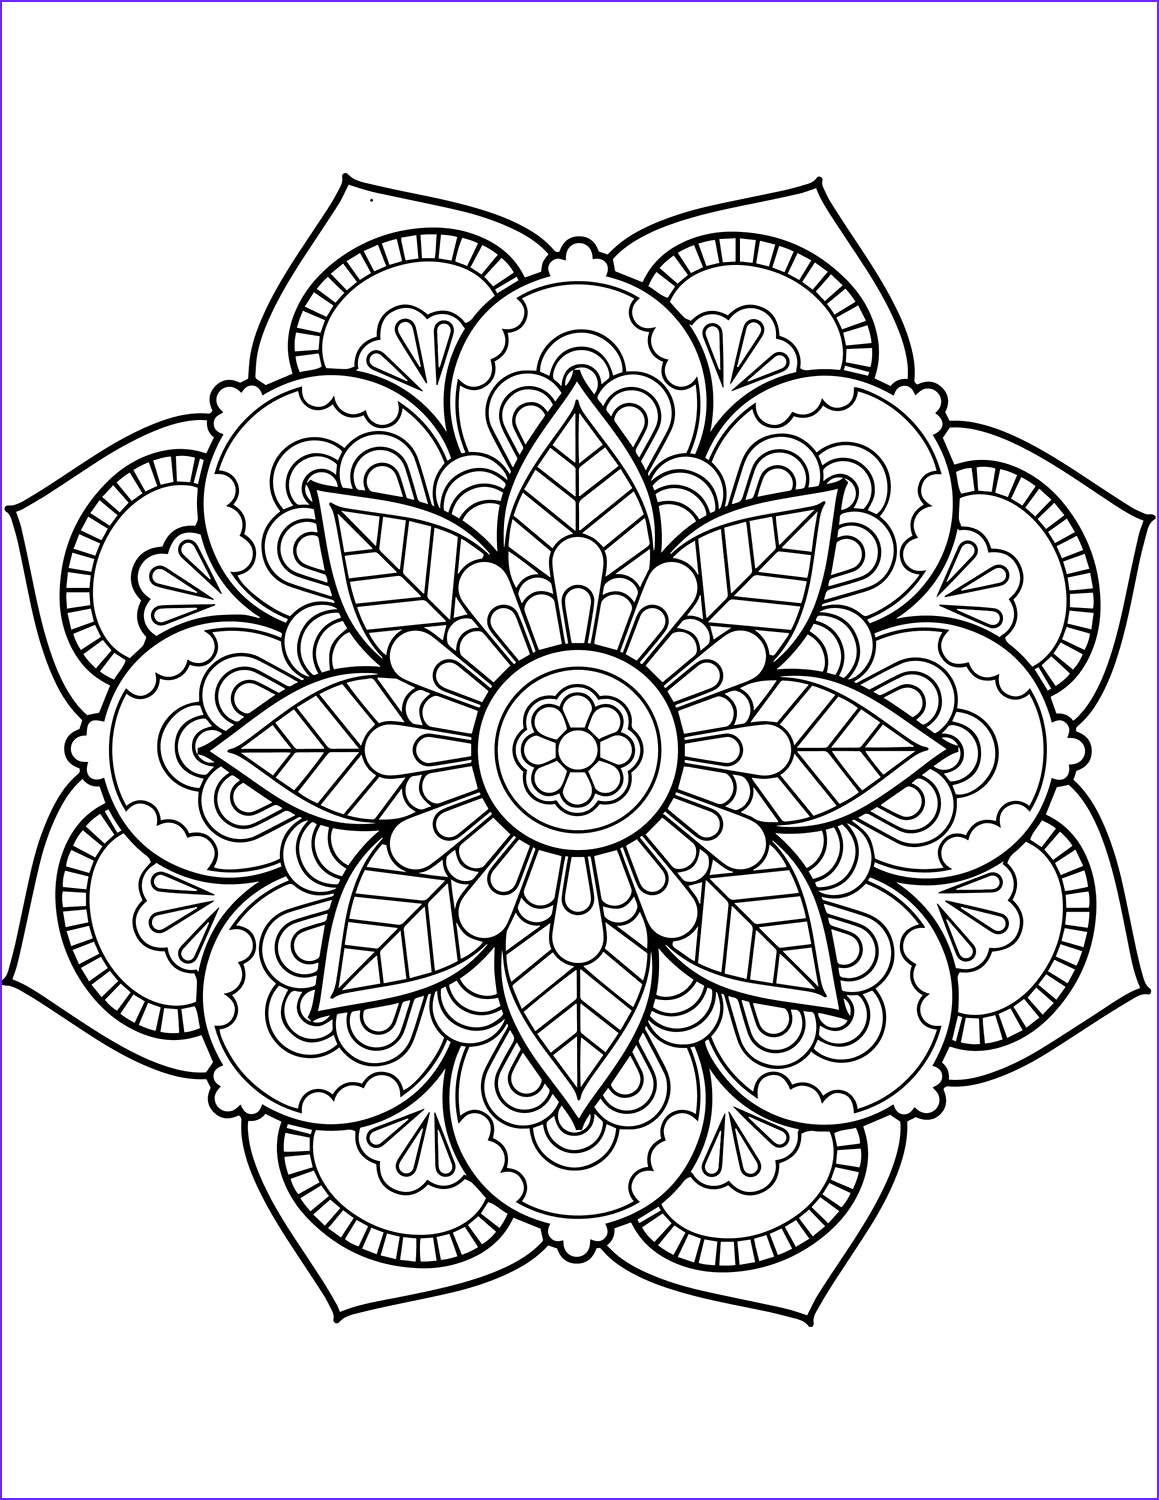 Free Printable Mandalas Coloring Pages Adults Beautiful Photos Flower Mandala Coloring Pages Best Coloring Pages for Kids